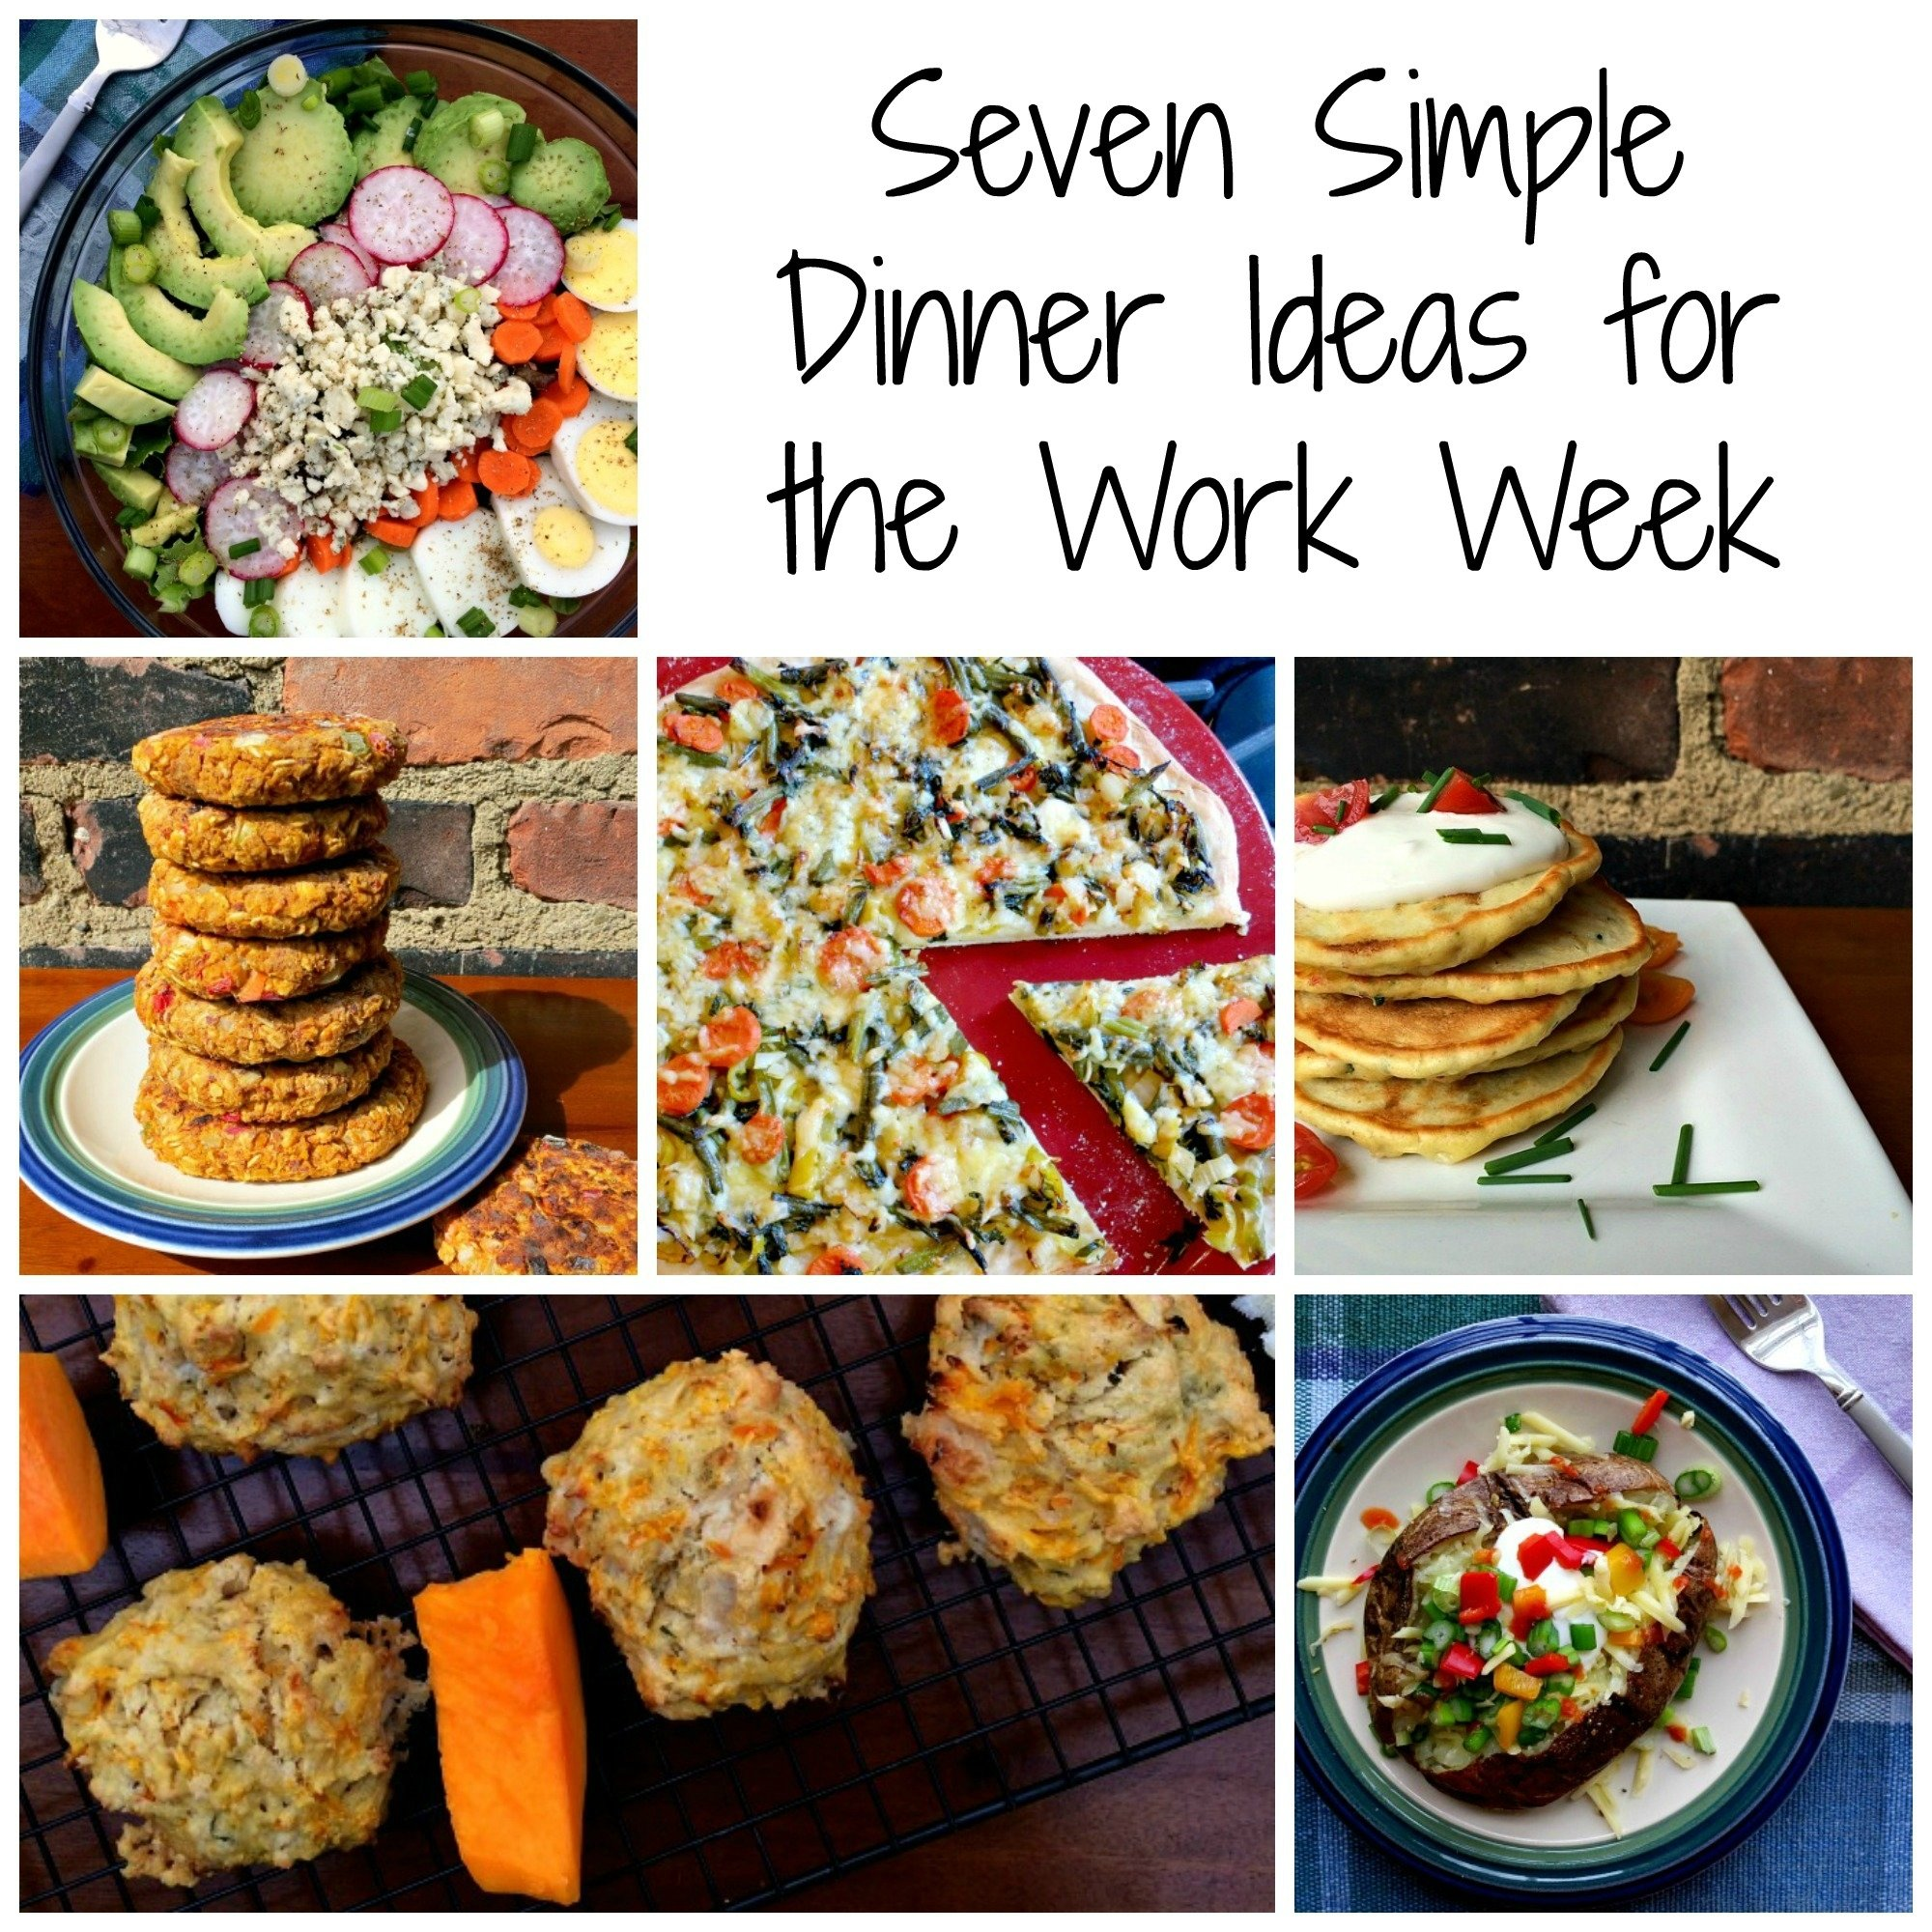 10 Stylish Dinner Ideas For The Week seven simple dinner ideas for the work week clean eats fast feets 2020